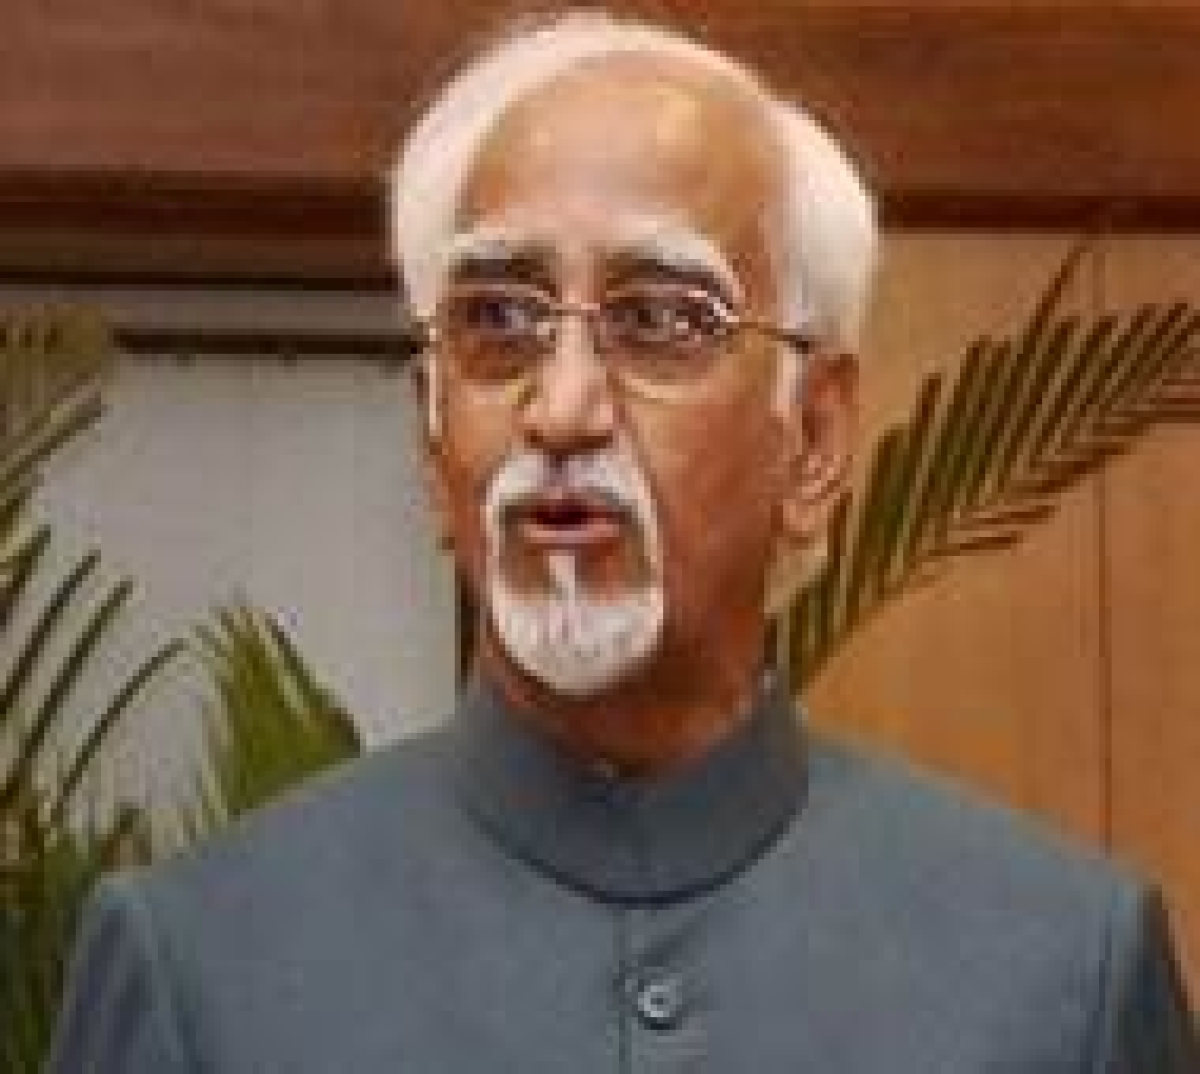 Africans are 'our guests', attacks on them 'despicable': Ansari